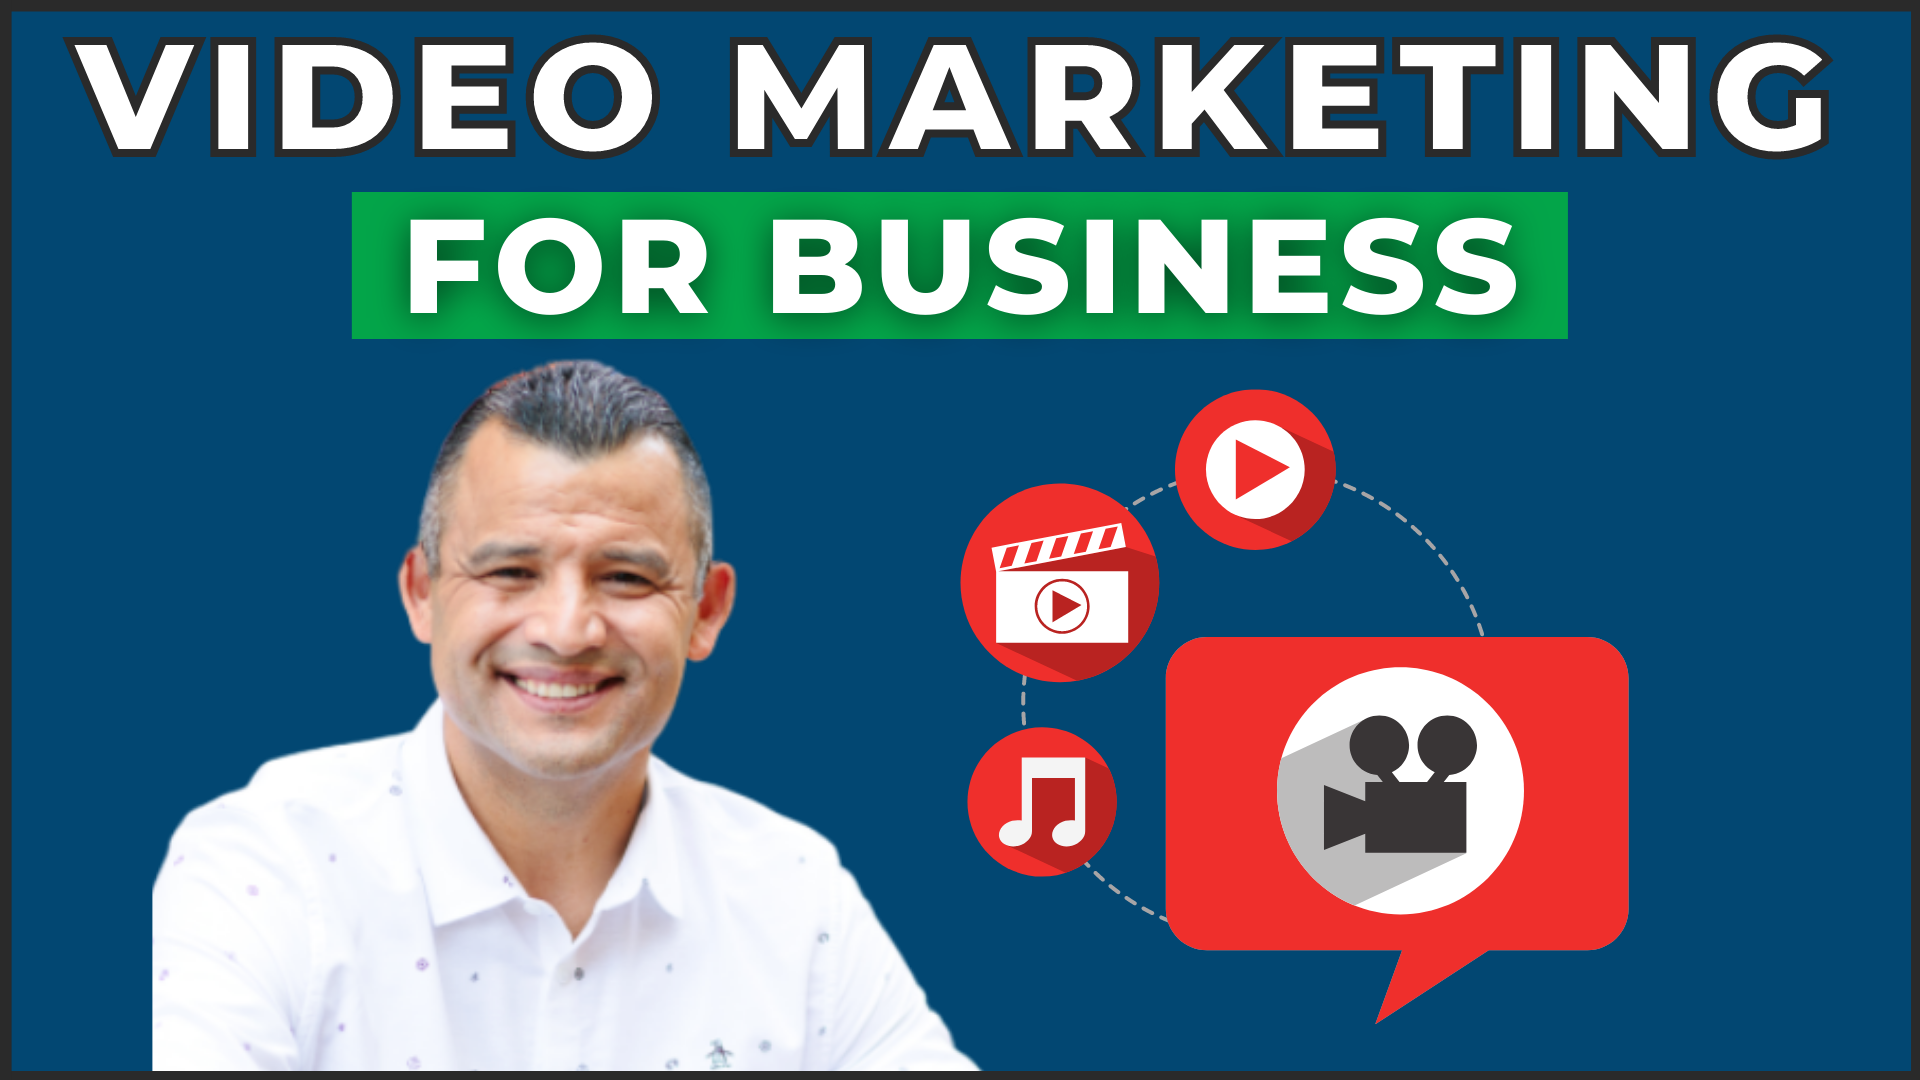 Why Video Marketing Is Important For Your Business